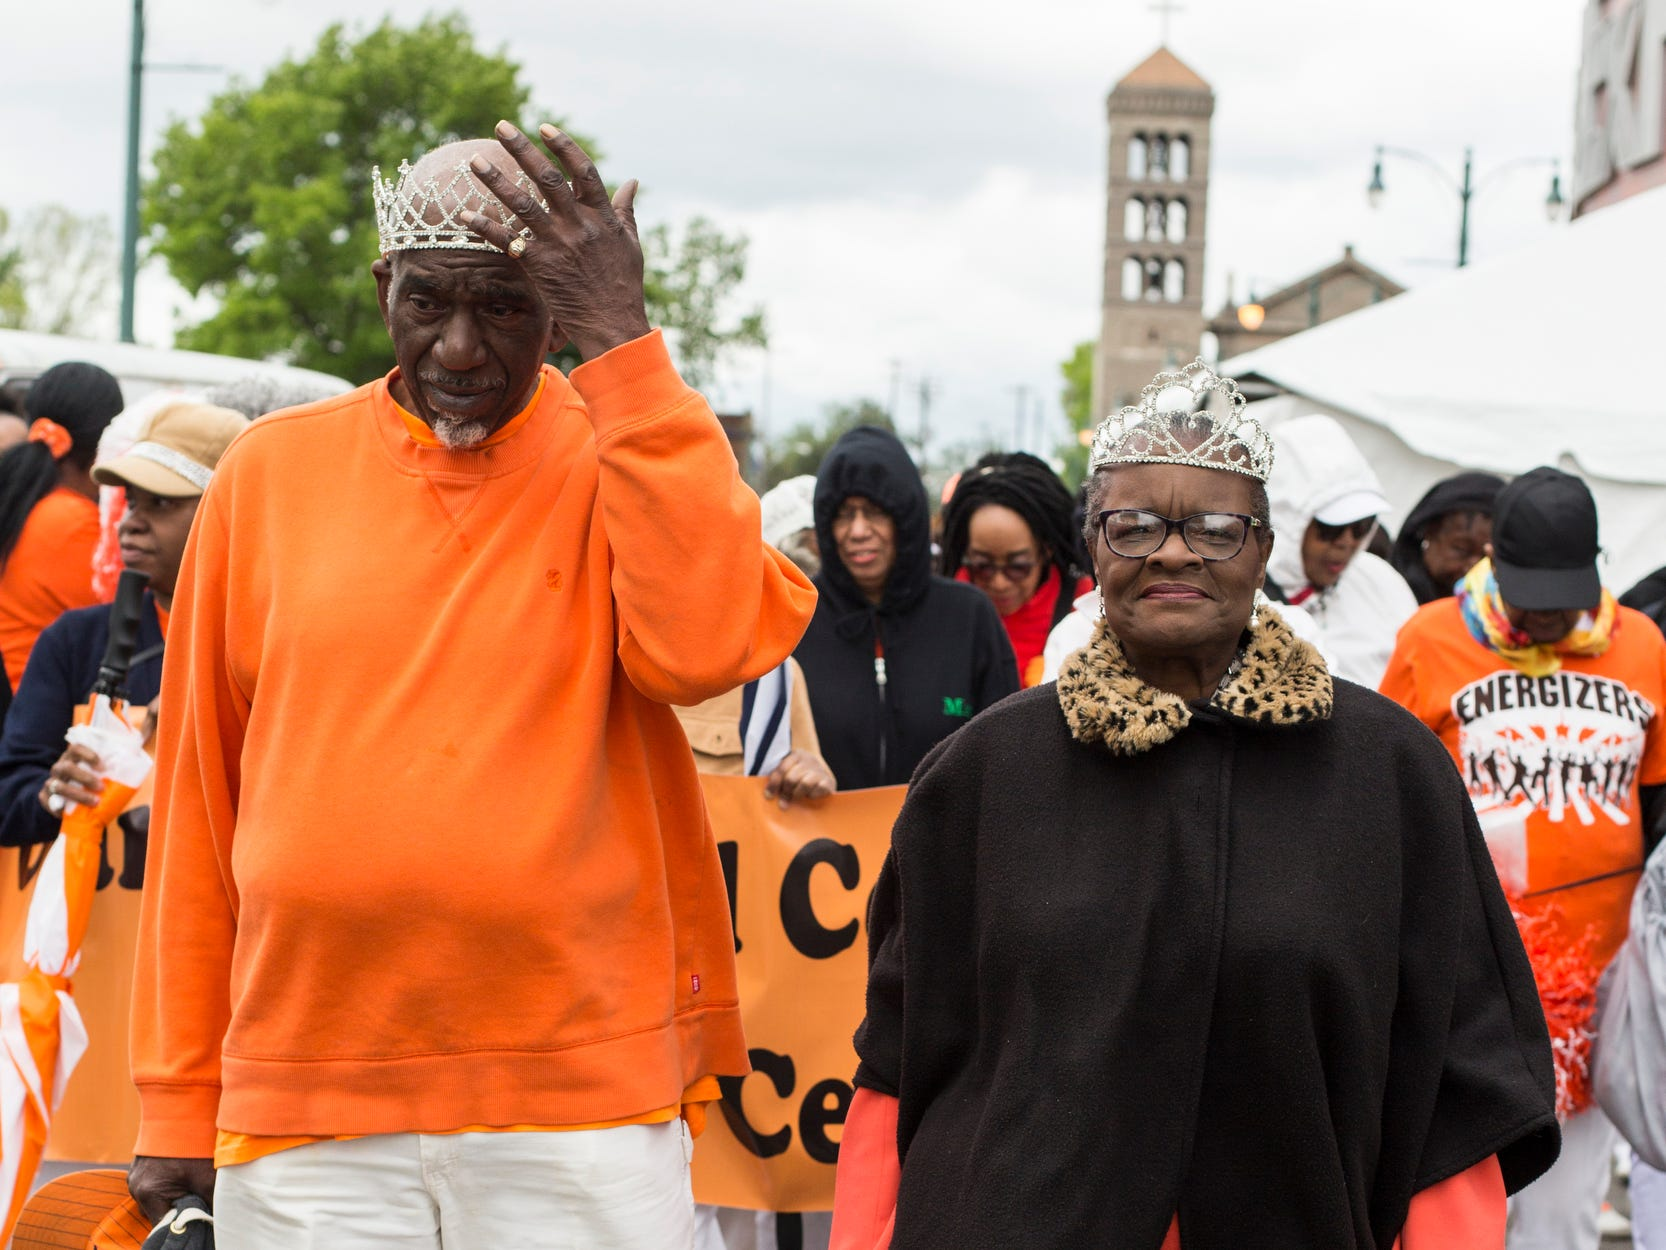 Preston Hurt, left, and W. Estelle Taylor, right, march as king and queen of the Orange Mound Senior Center during the Africa in April International Diversity Parade on Friday April 19, 2019. The 33rd annual Africa in April Cultural Awareness Festival runs through April 21 at Robert Church Park.